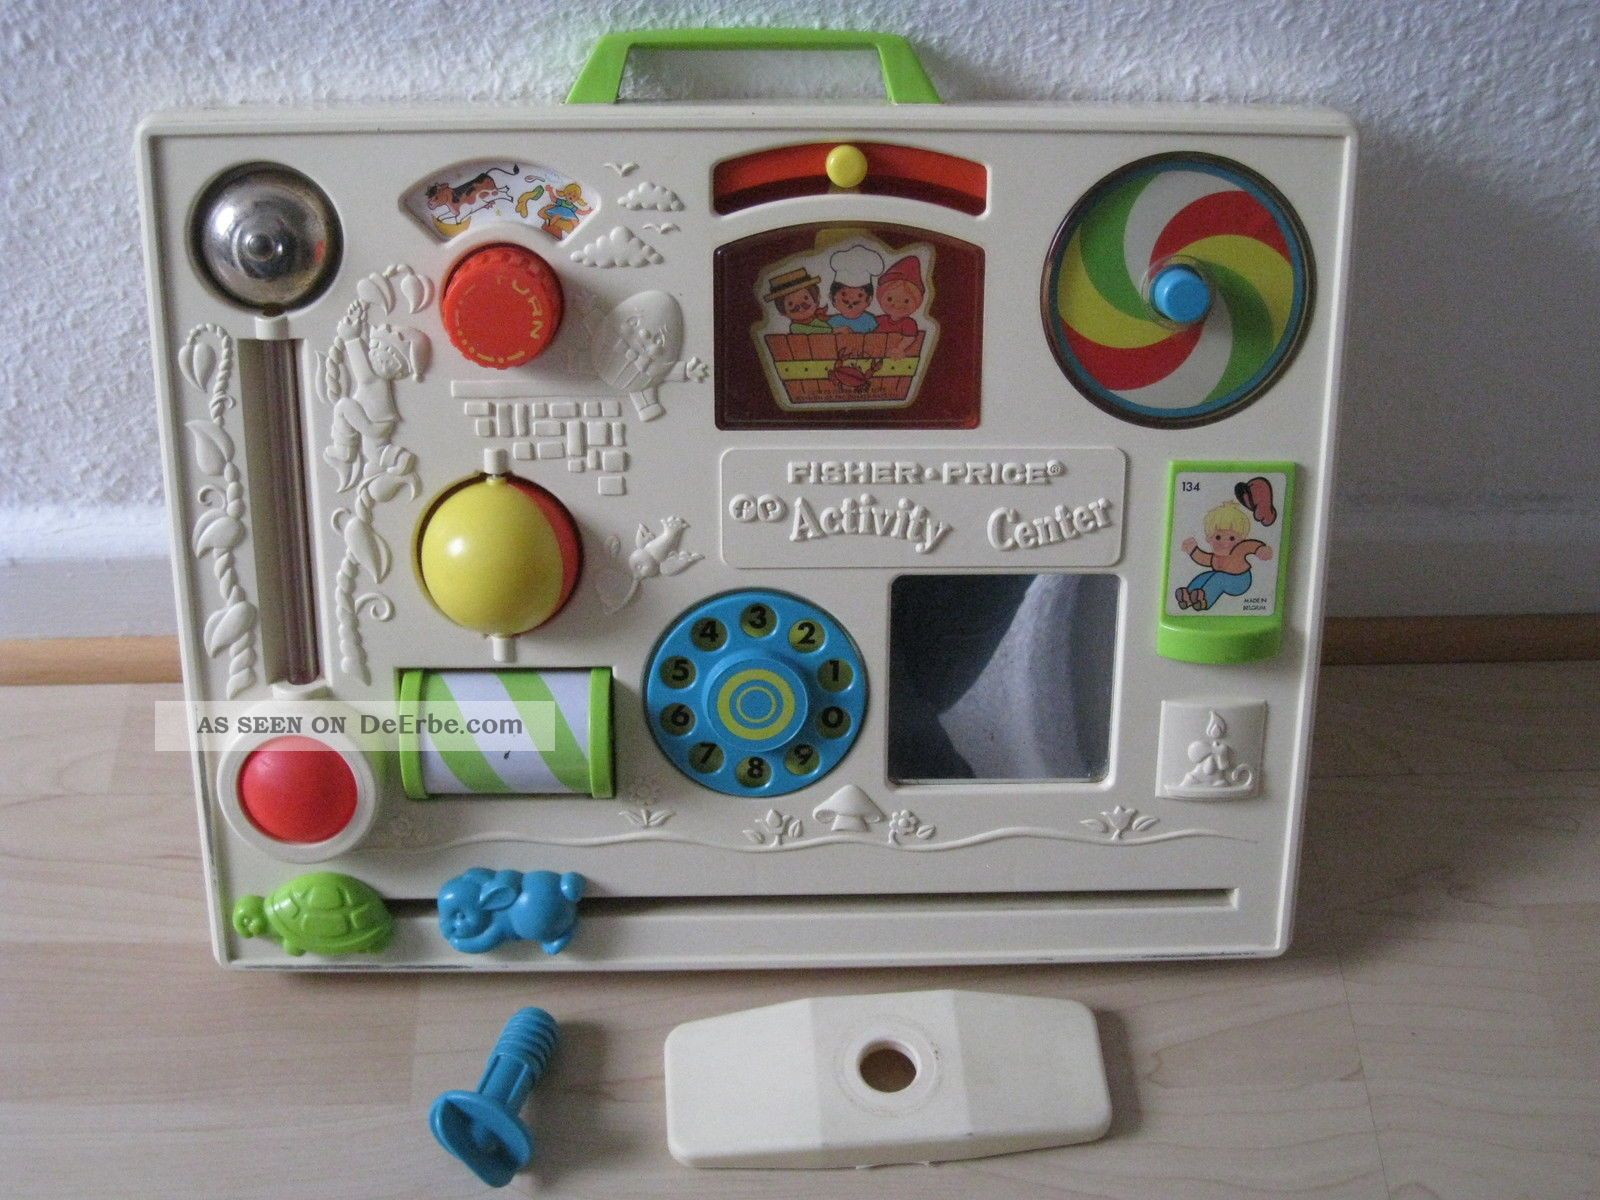 Fisher Price Küche 80er Altes Fisher Price Activity Center Nr 1134 Vintage